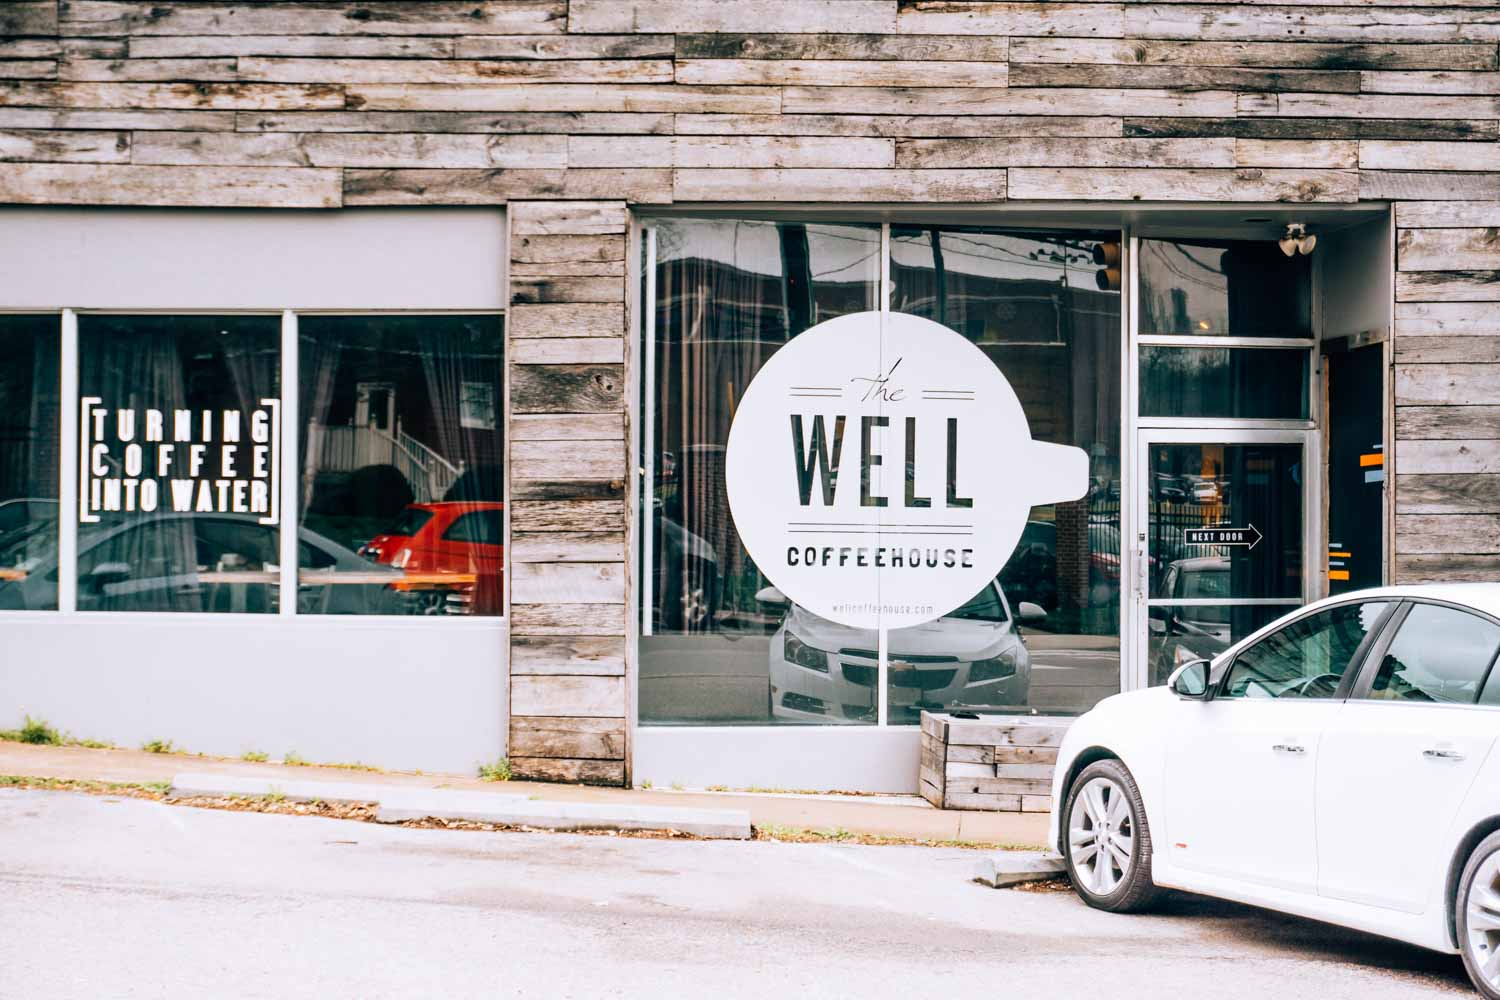 exterior of well coffeehouse in nashville tennessee - bucket list travel